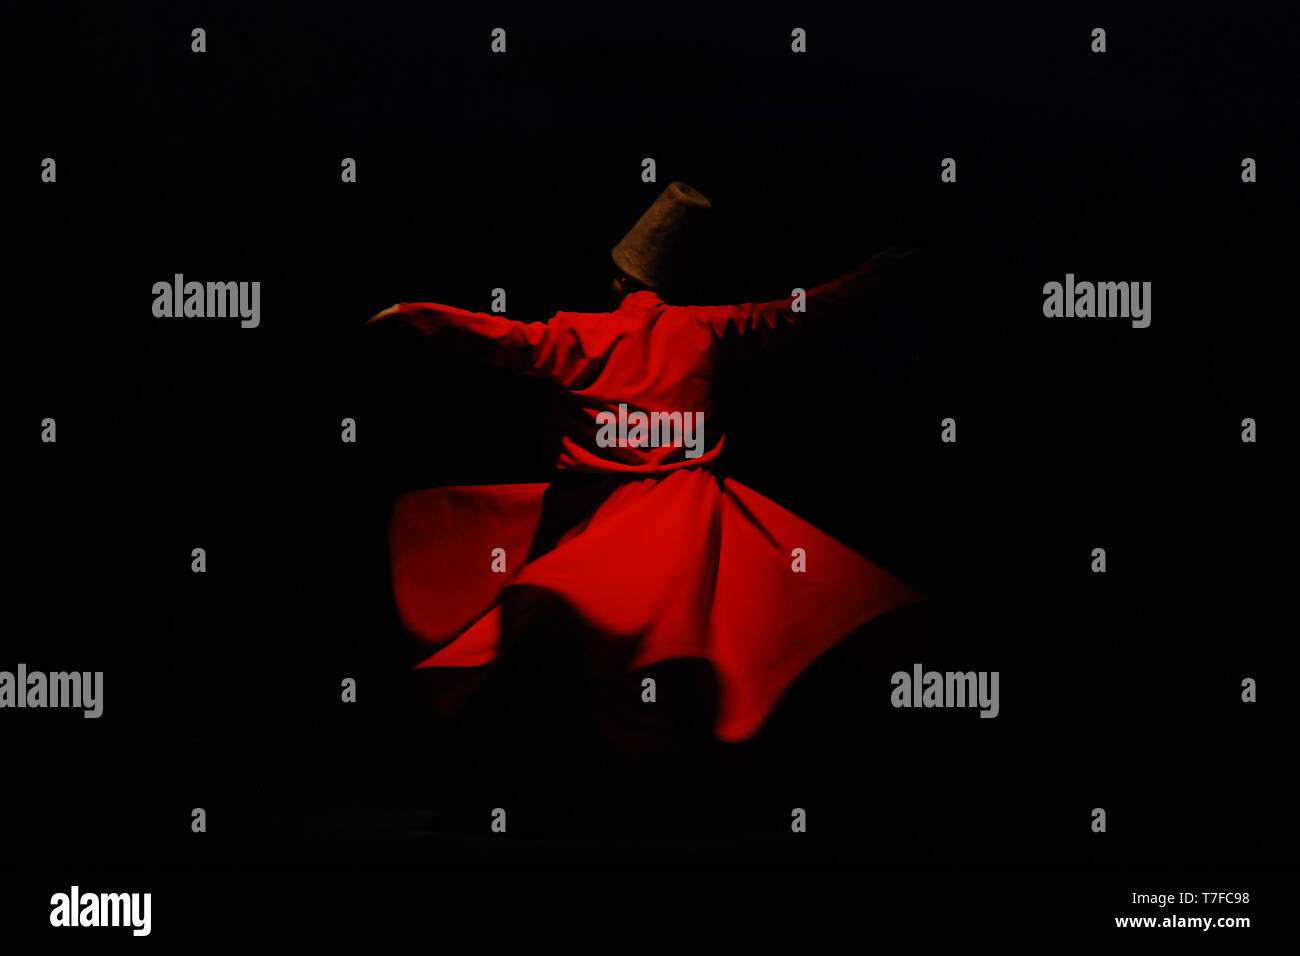 Whirling dervish in red garment on black background Stock Photo